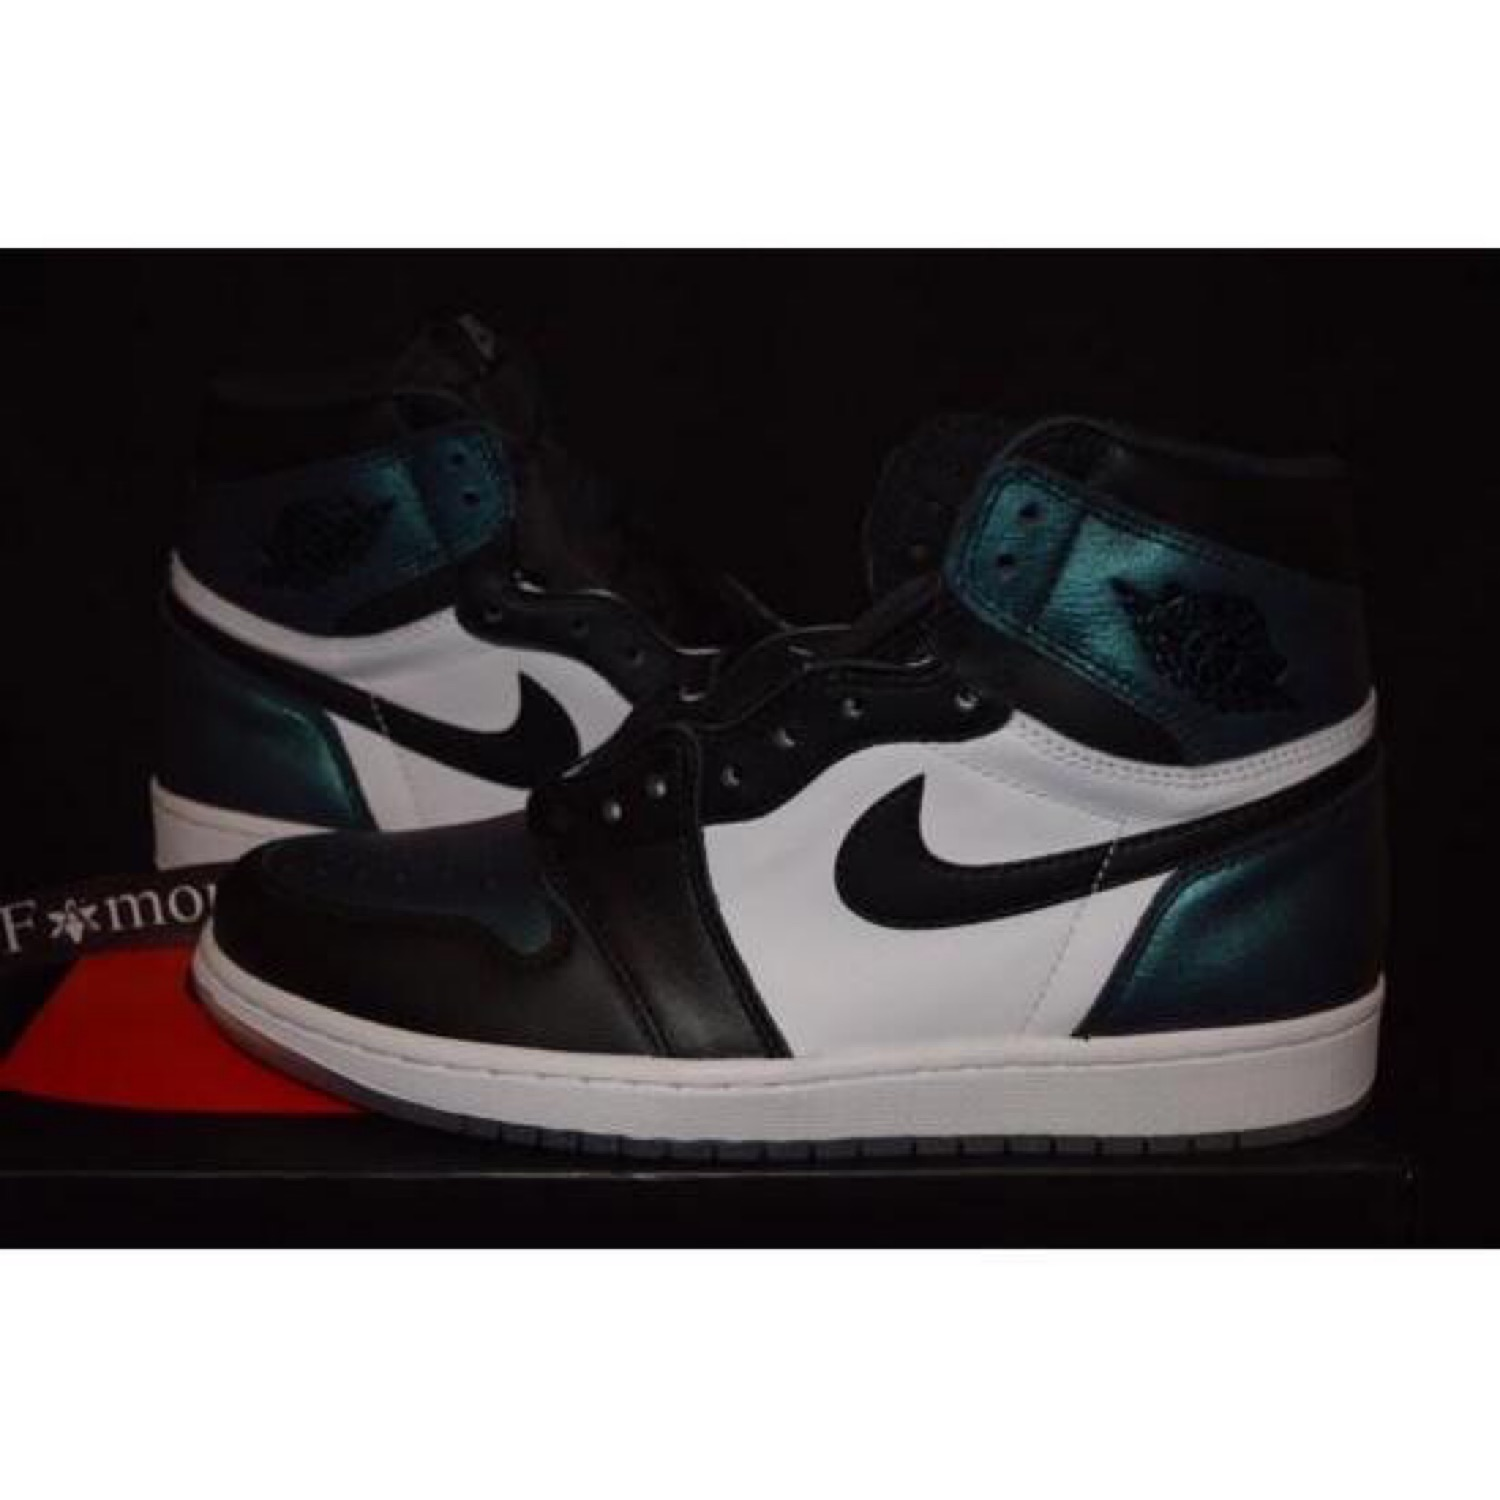 huge discount b8a07 81726 Nike Air Jordan 1 All Star Chameleon Size 9